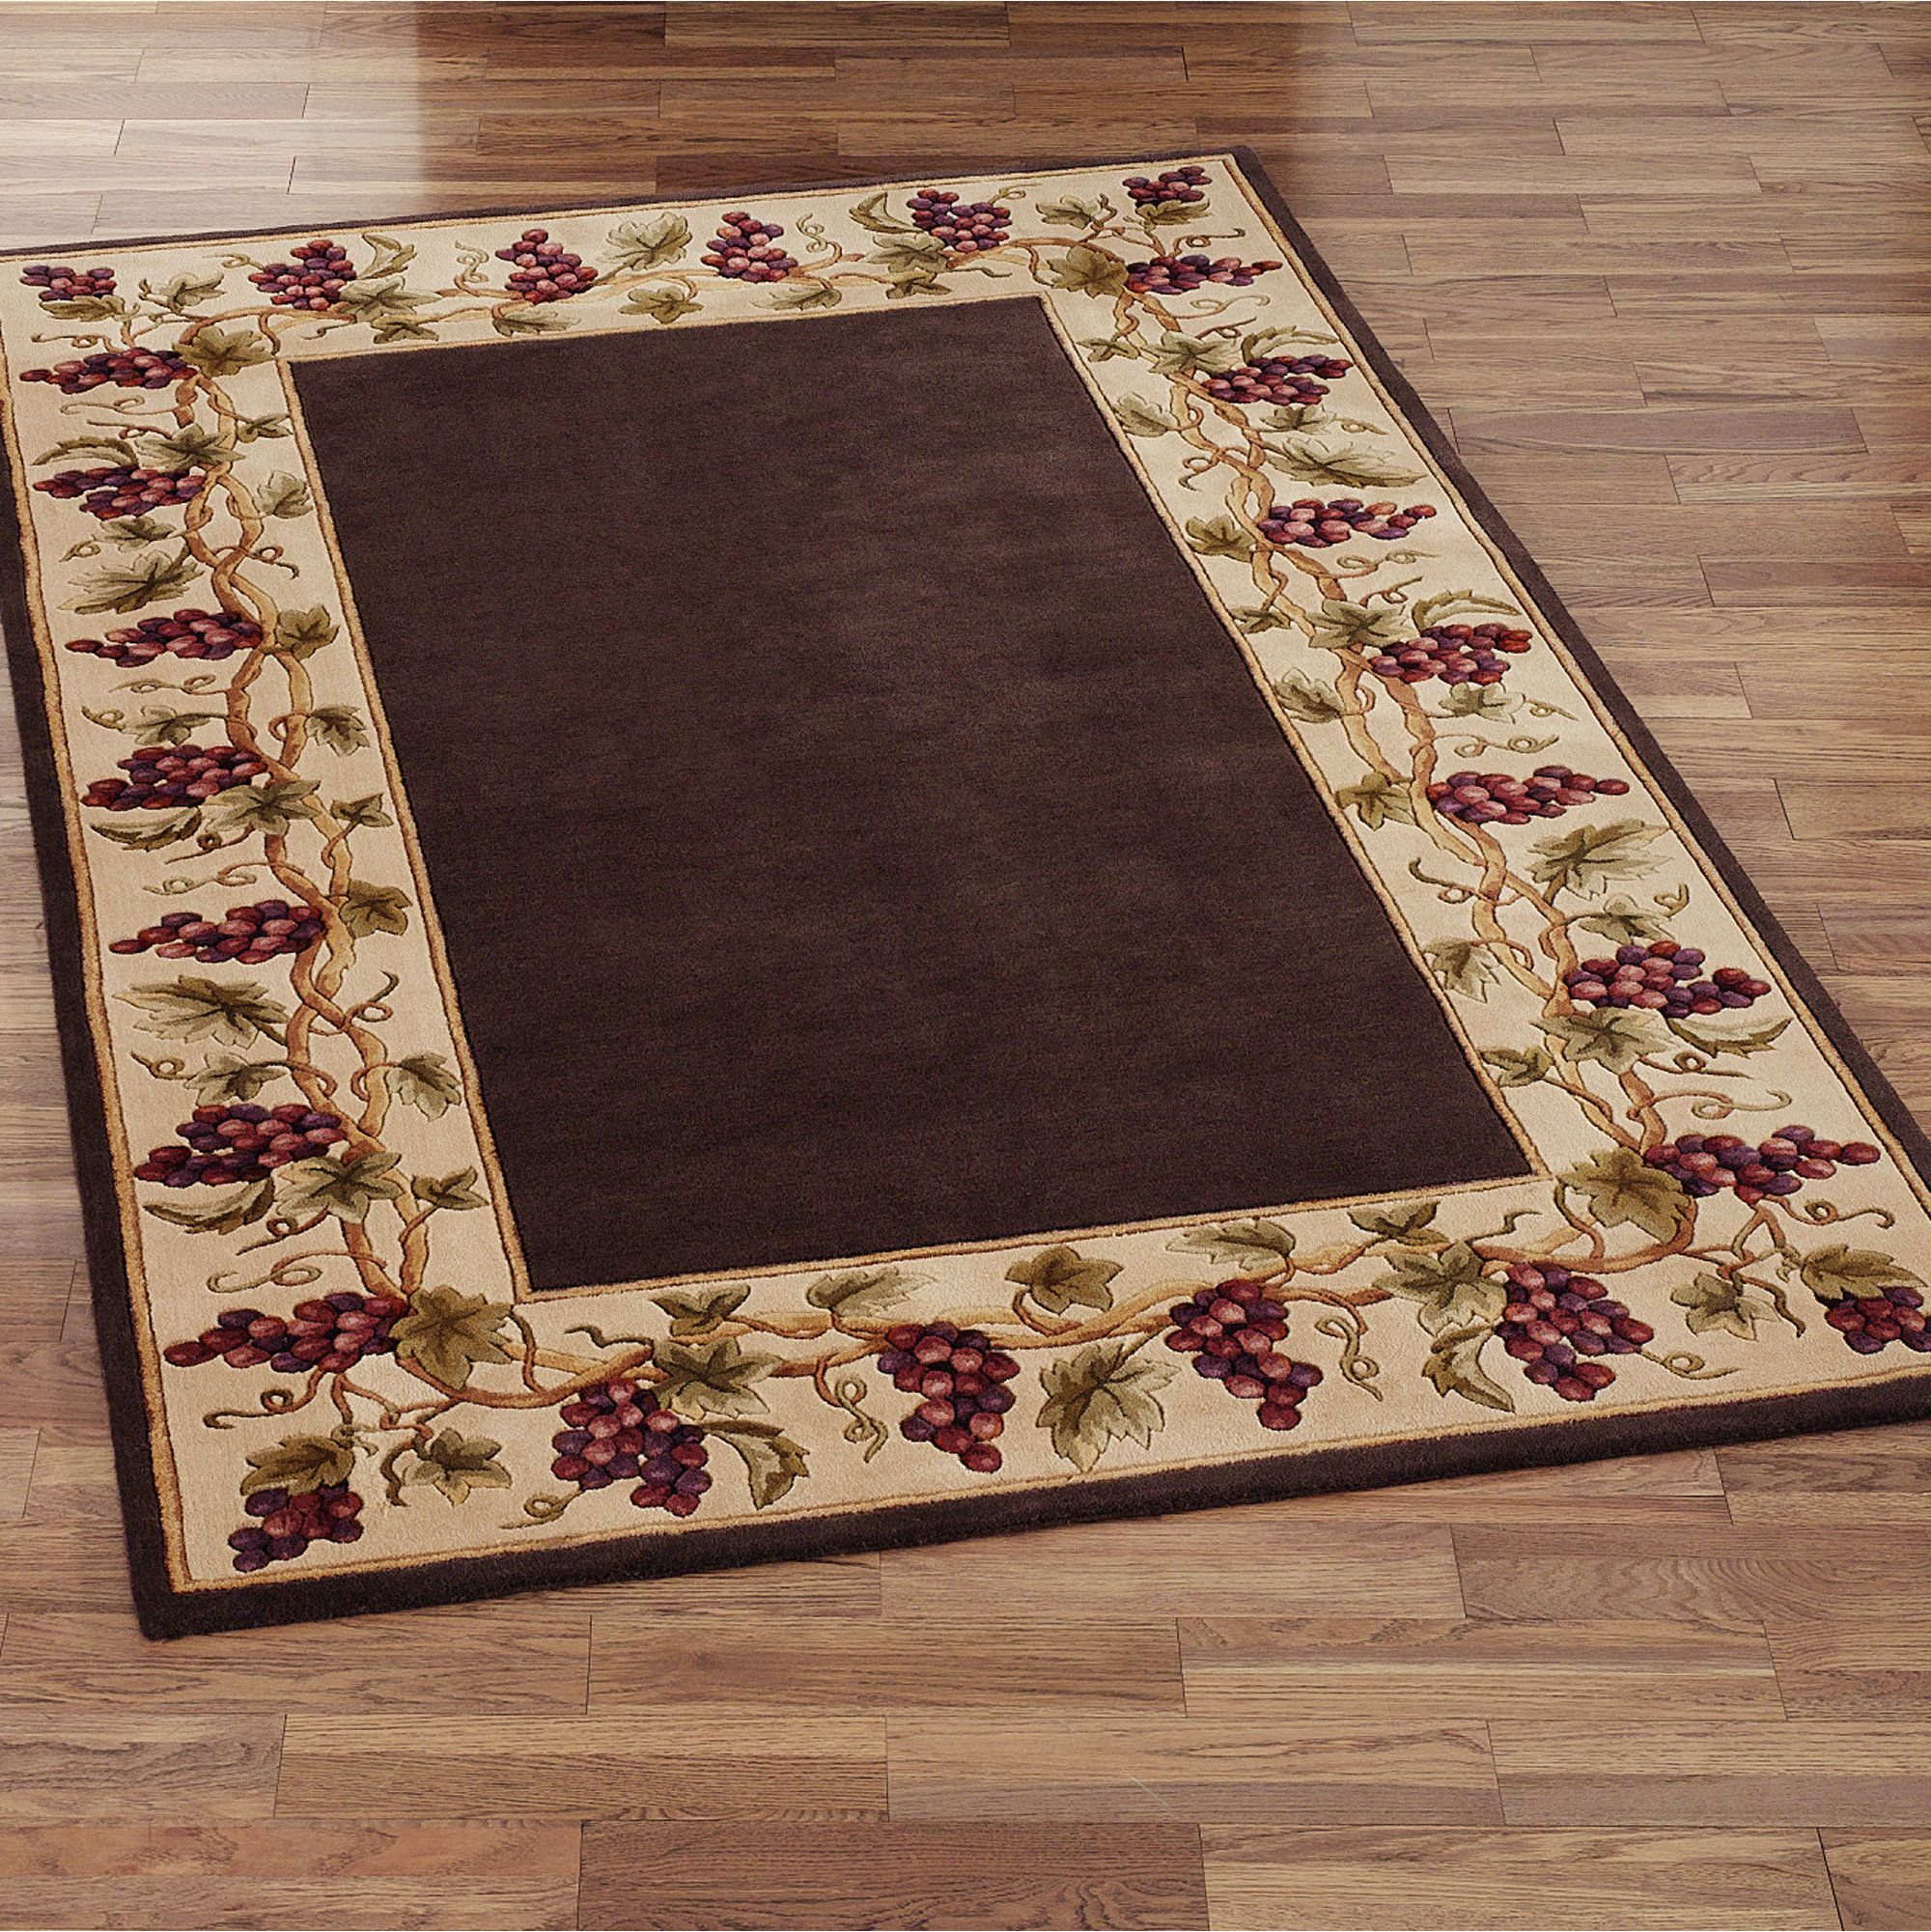 Wine And Grapes Kitchen Rugs Google Search Stuff To